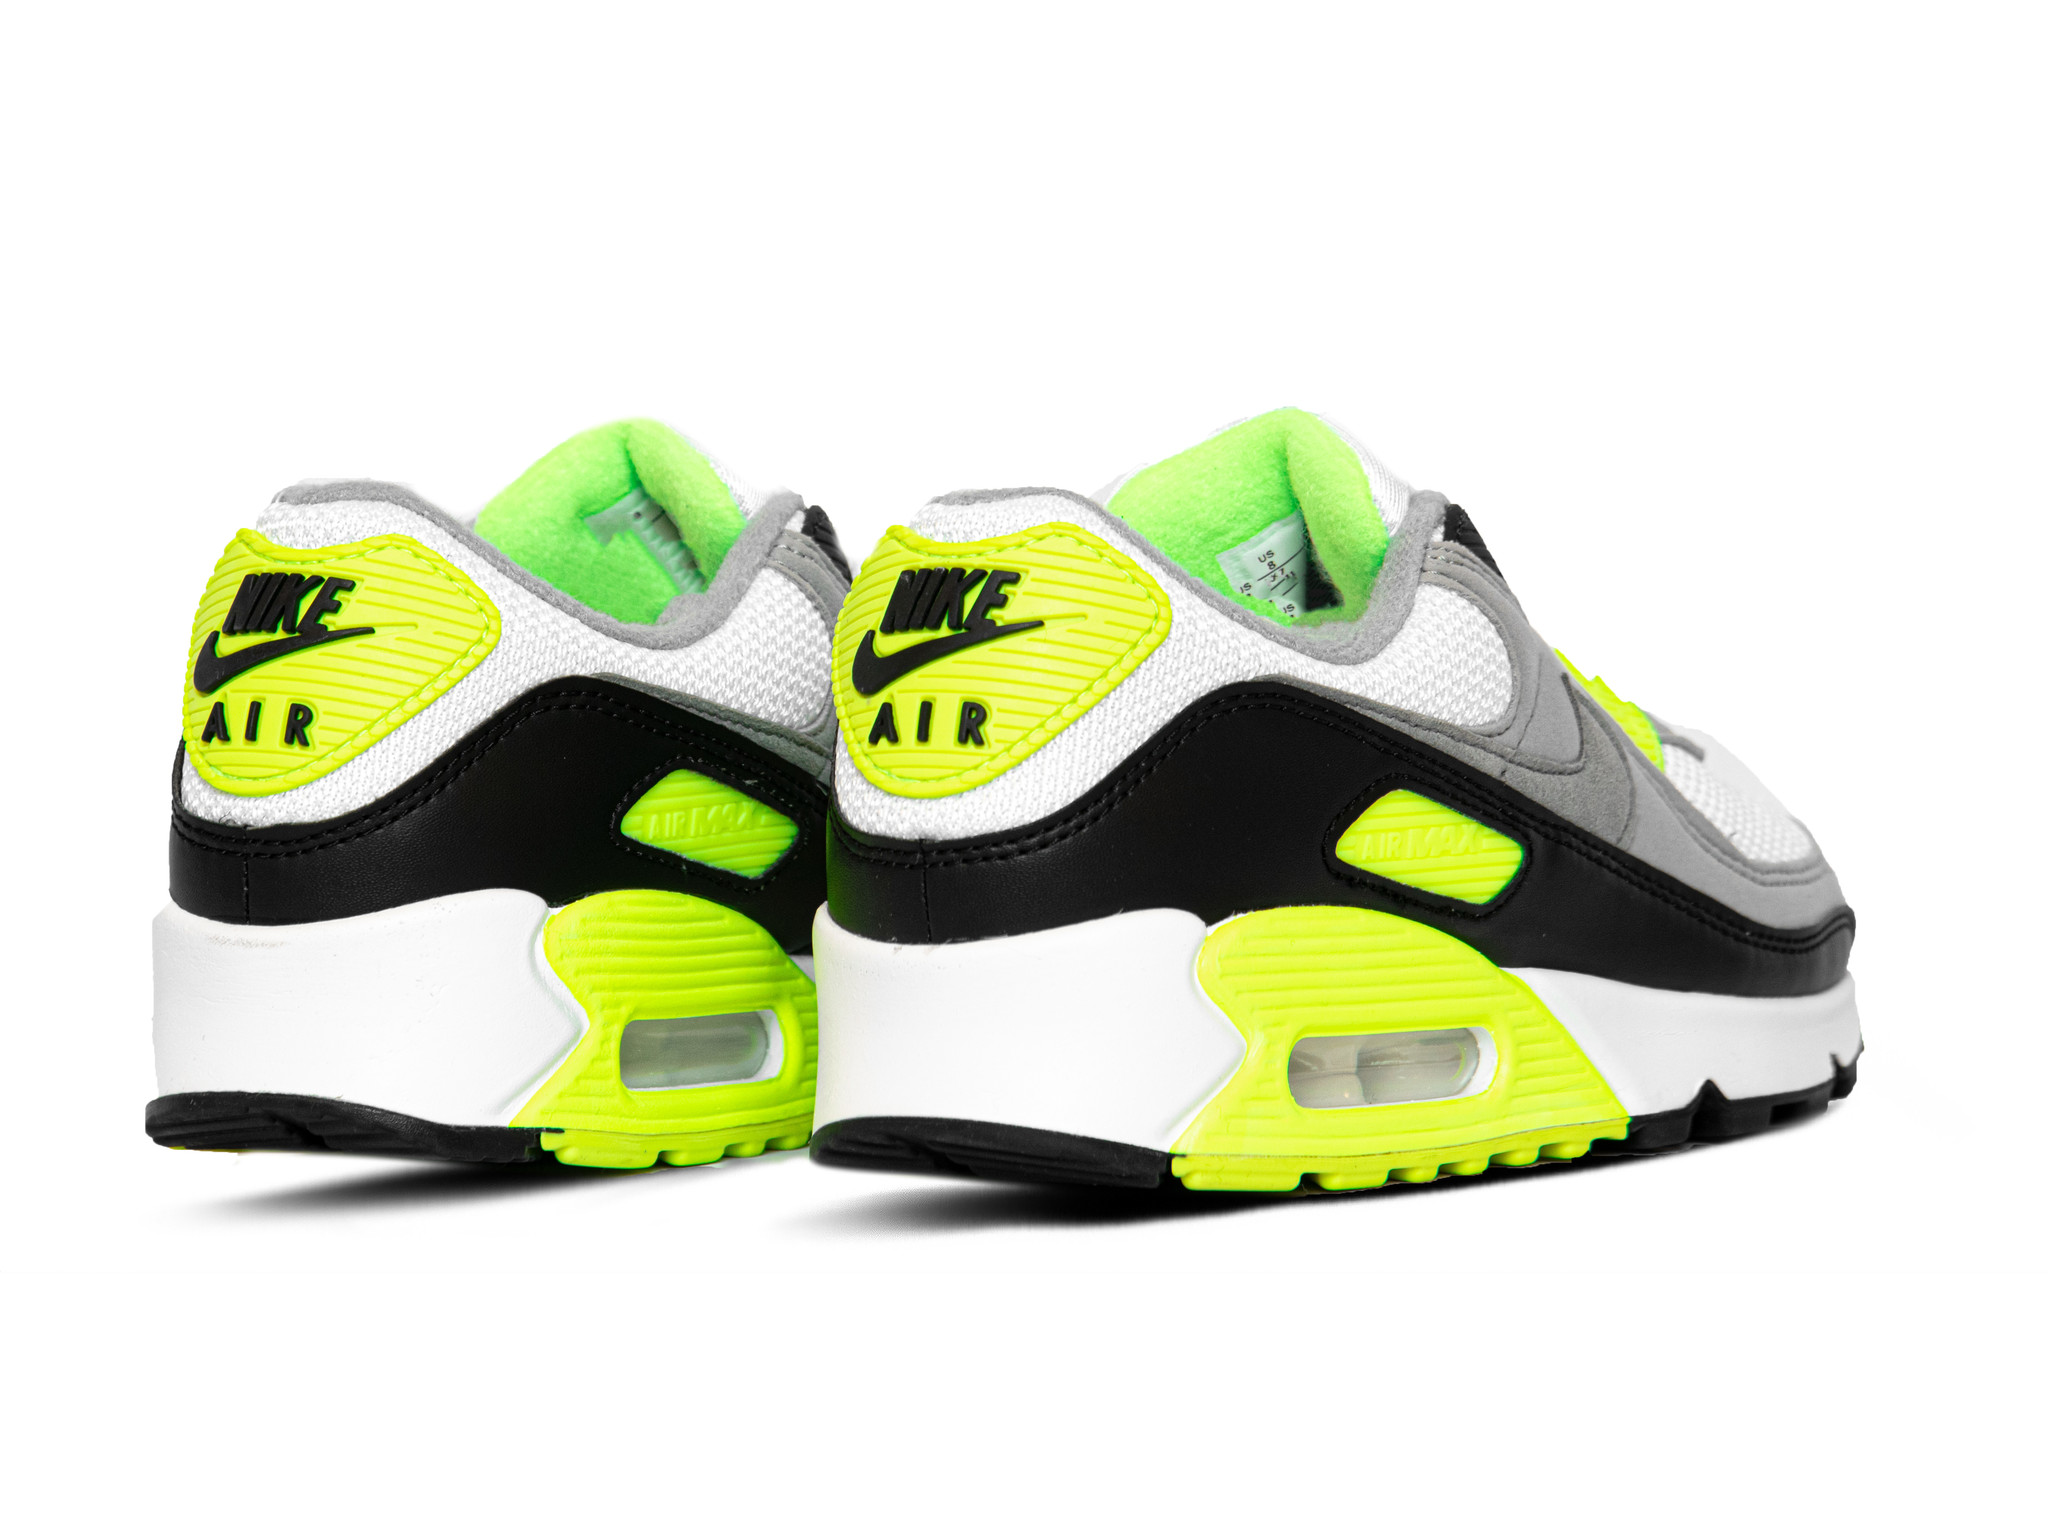 Nike Air Max 90 White Particle Grey Volt Black CD0881 103